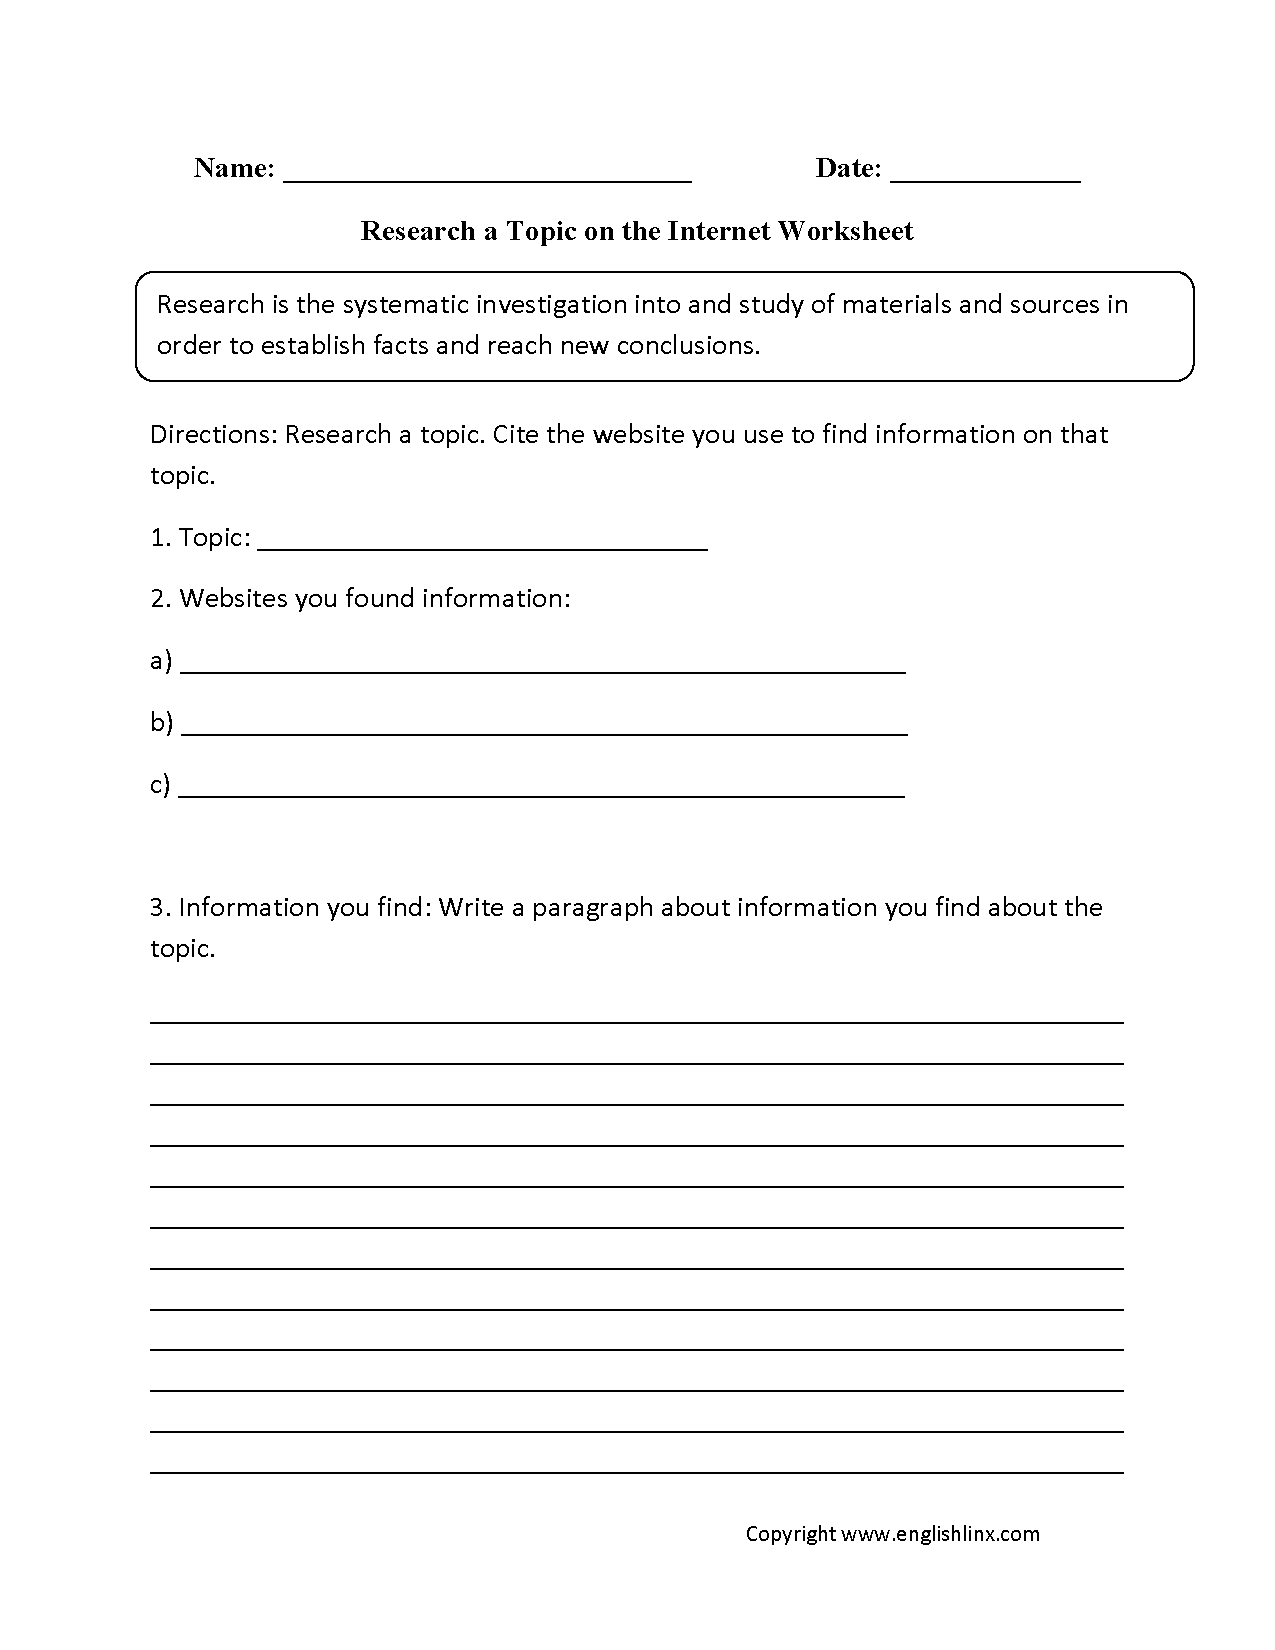 Aldiablosus  Gorgeous Englishlinxcom  Research Worksheets With Goodlooking On The Internet Worksheet With Charming Worksheets Nd Grade Also Writing A Summary Worksheet In Addition Convection Currents Worksheet And  Es Worksheet As Well As Dihybrid Worksheet Additionally Pollination Worksheet From Englishlinxcom With Aldiablosus  Goodlooking Englishlinxcom  Research Worksheets With Charming On The Internet Worksheet And Gorgeous Worksheets Nd Grade Also Writing A Summary Worksheet In Addition Convection Currents Worksheet From Englishlinxcom